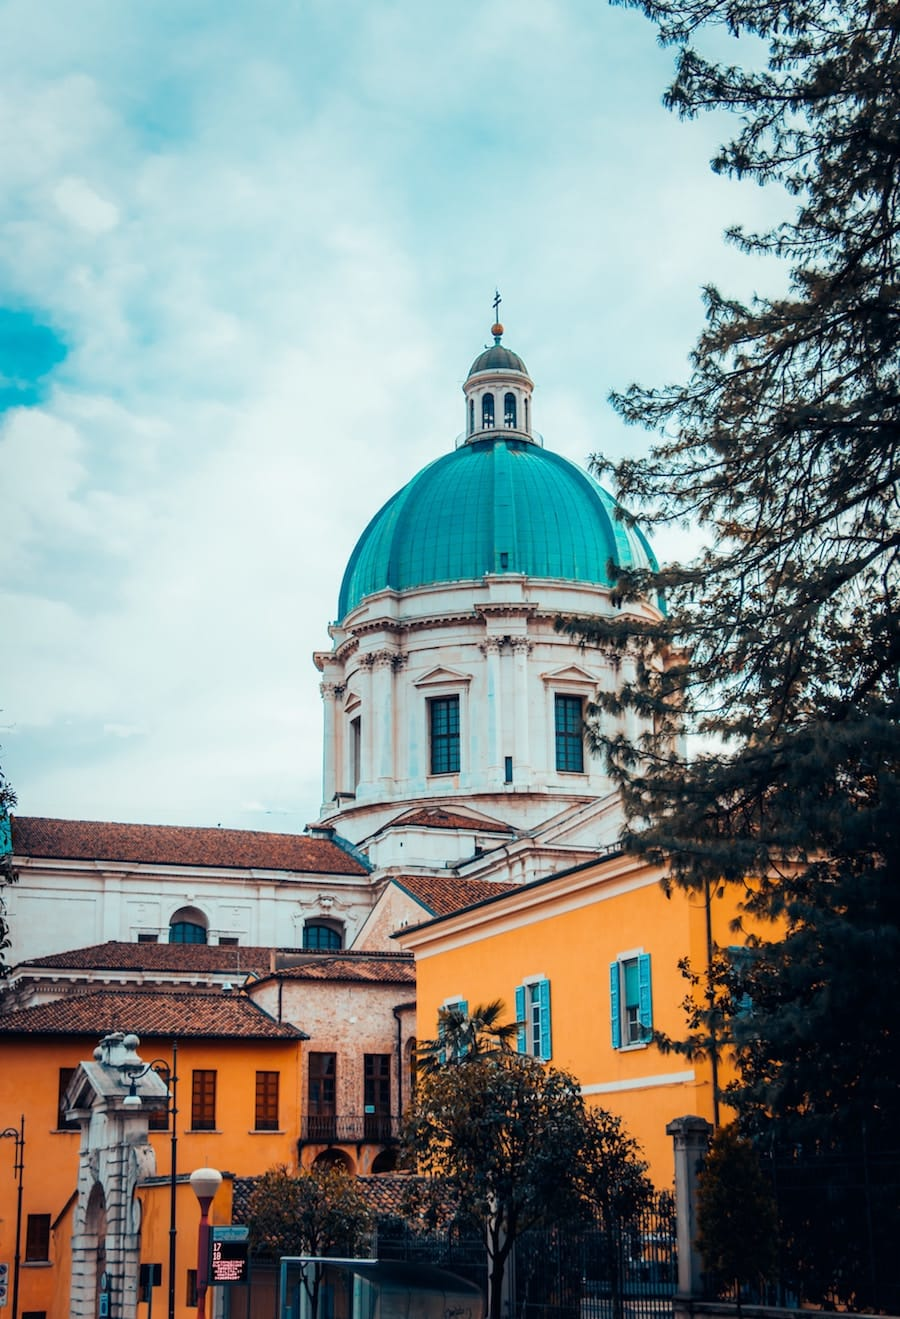 brescia italy day trip from milan